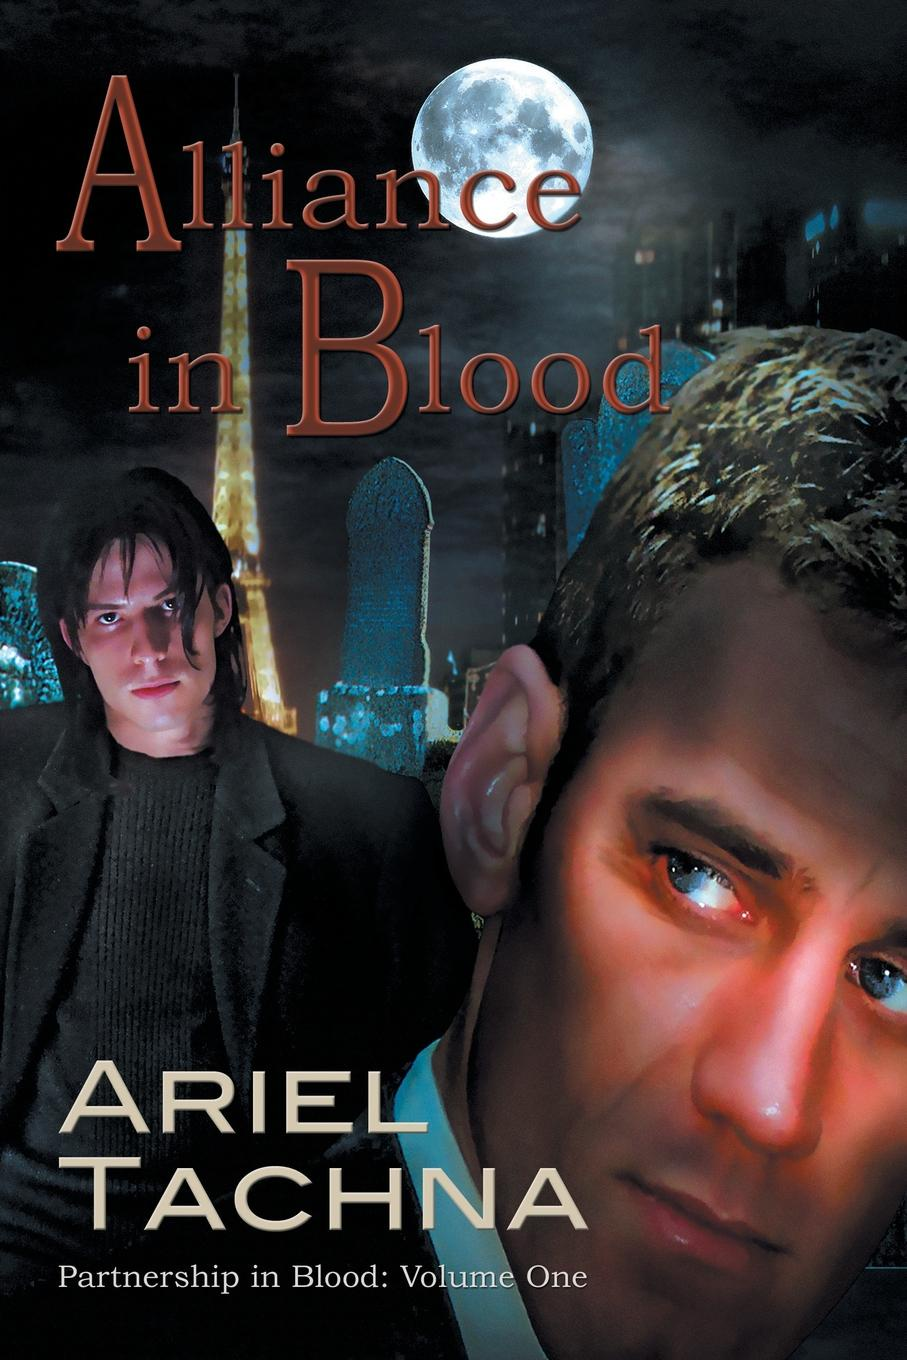 Ariel Tachna Alliance in Blood varney the vampire or the feast of blood one volume edition